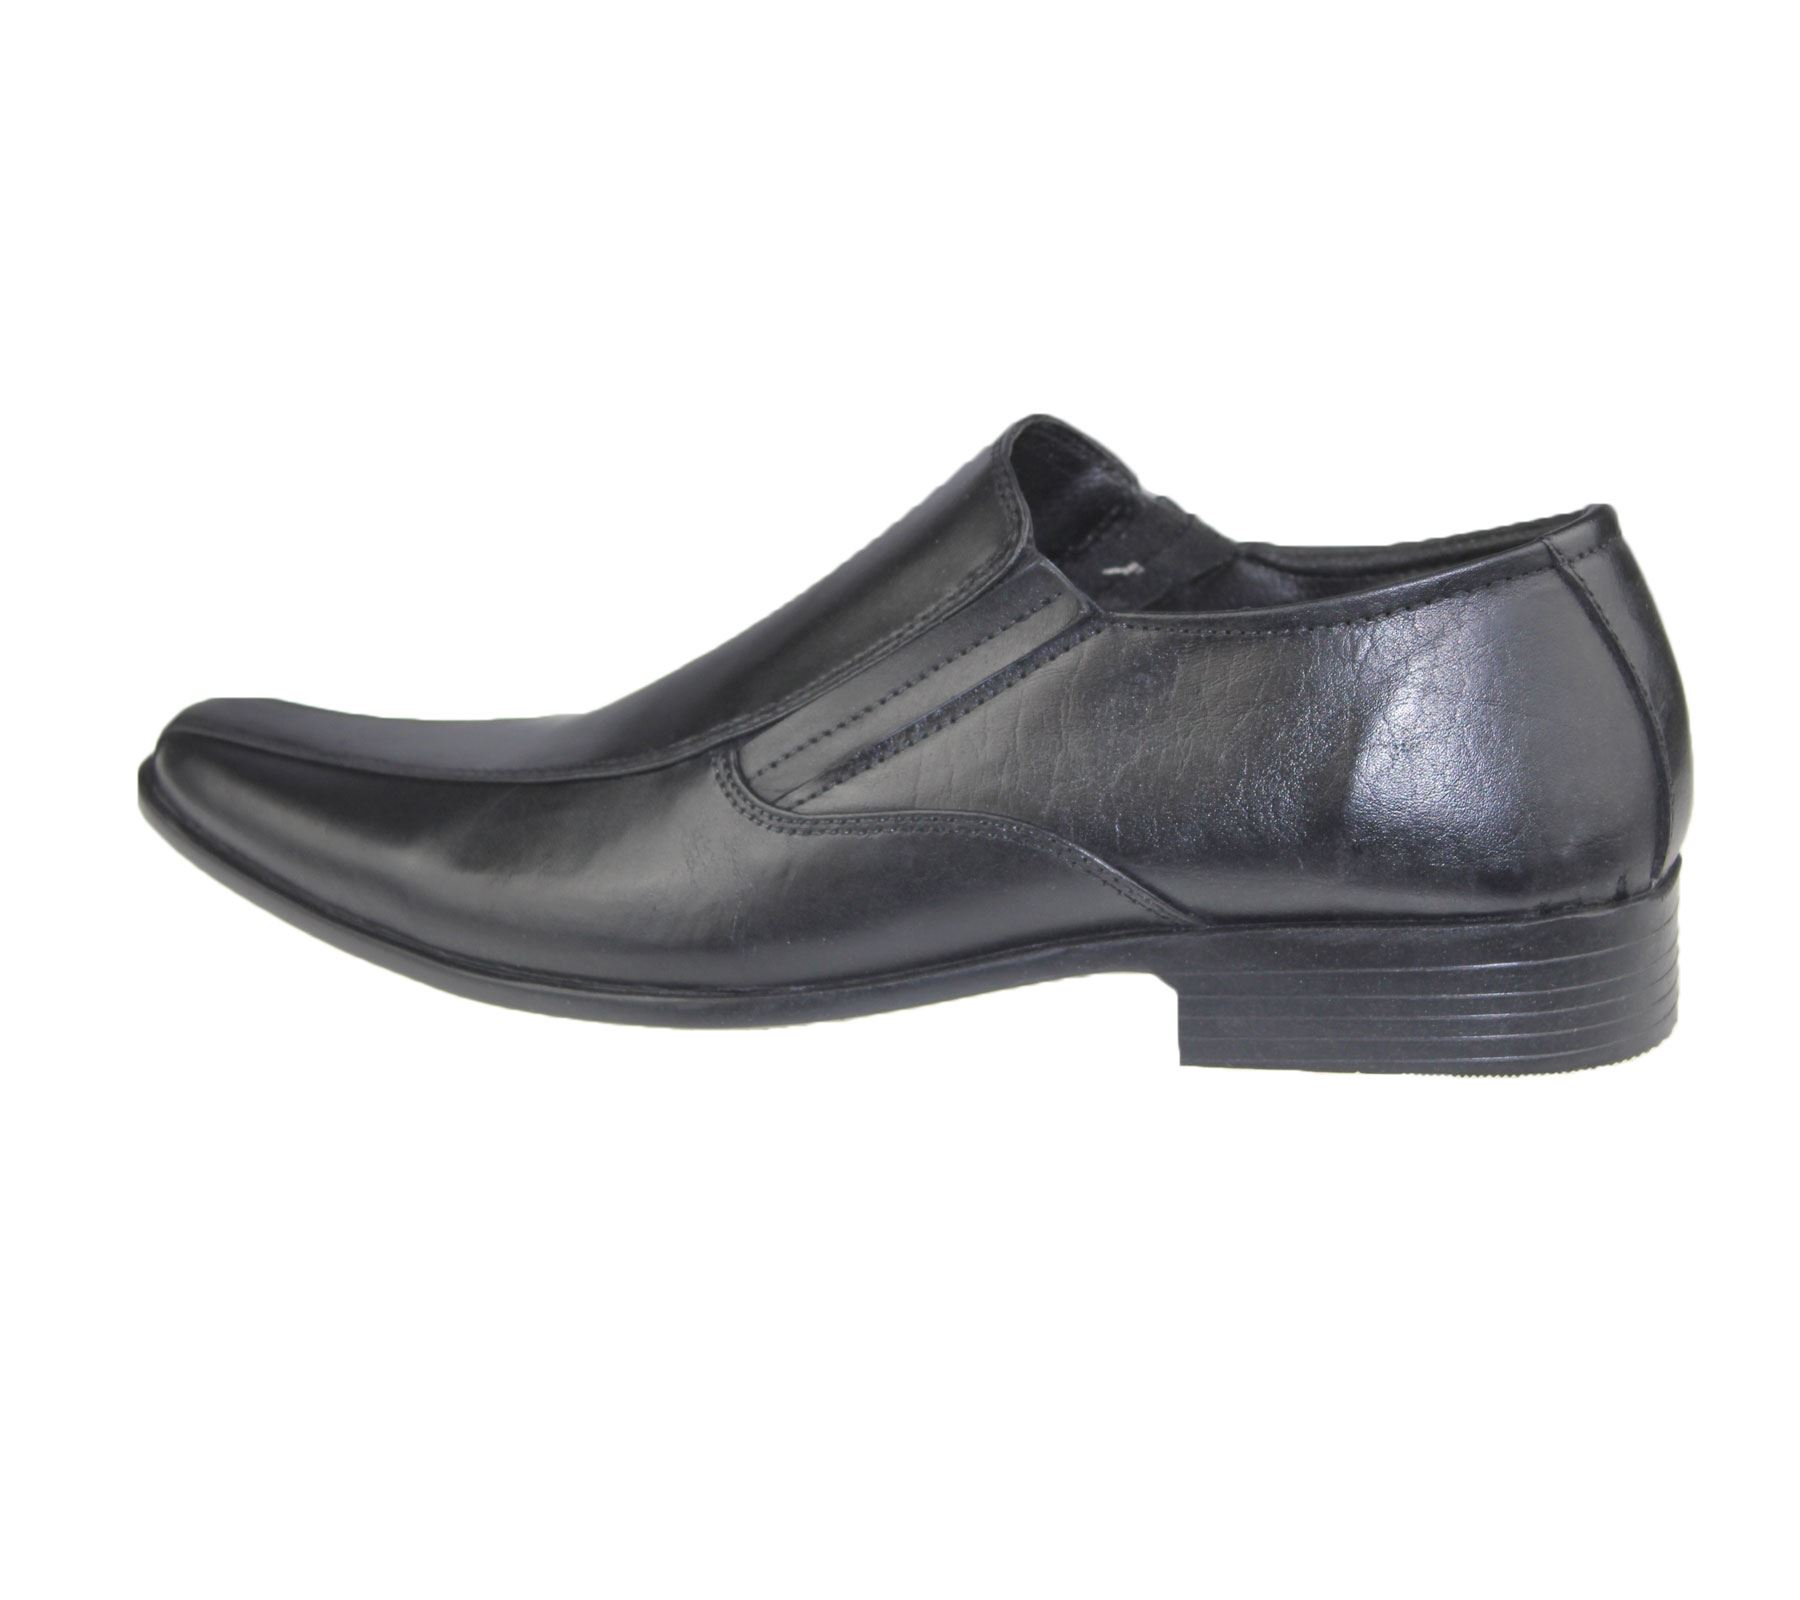 Mens Slip On Office Shoes Wedding Smart Italian Casual ...